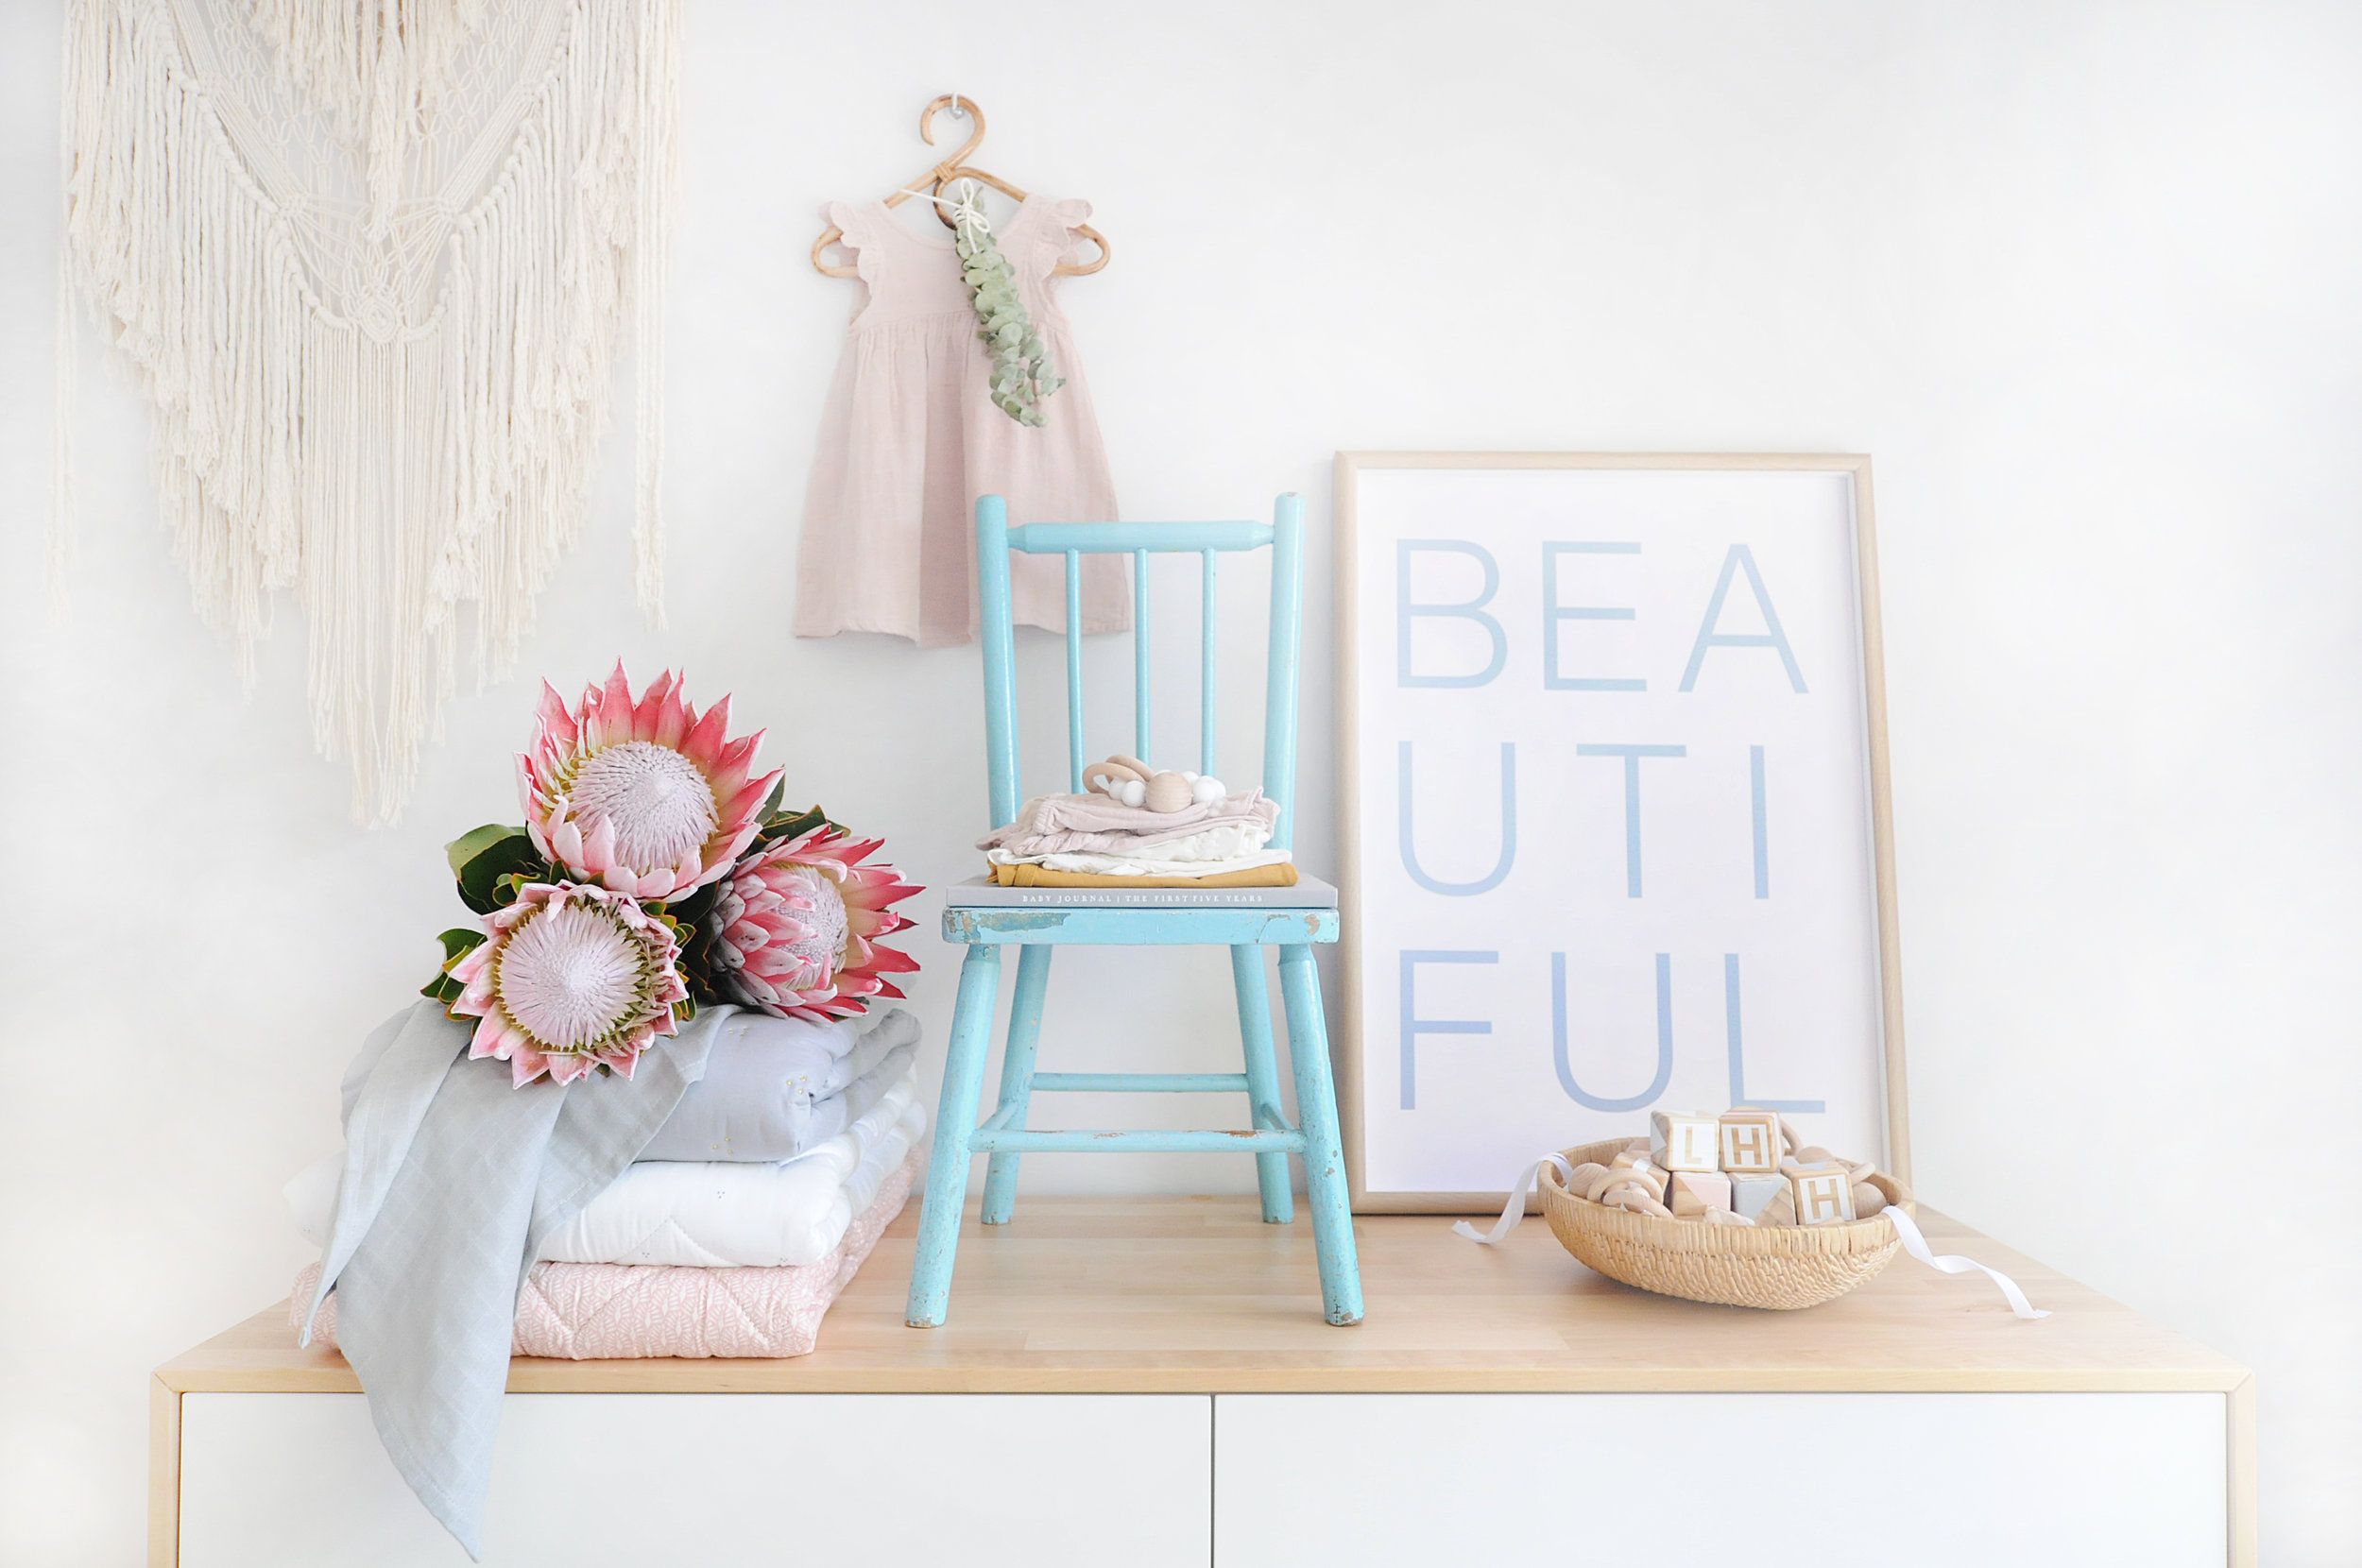 This image was created for an online baby boutique shop, and I love the mix of pastel tones and textures. i used some of my favourite props, Proteas, cane, macrame, and vintage chair